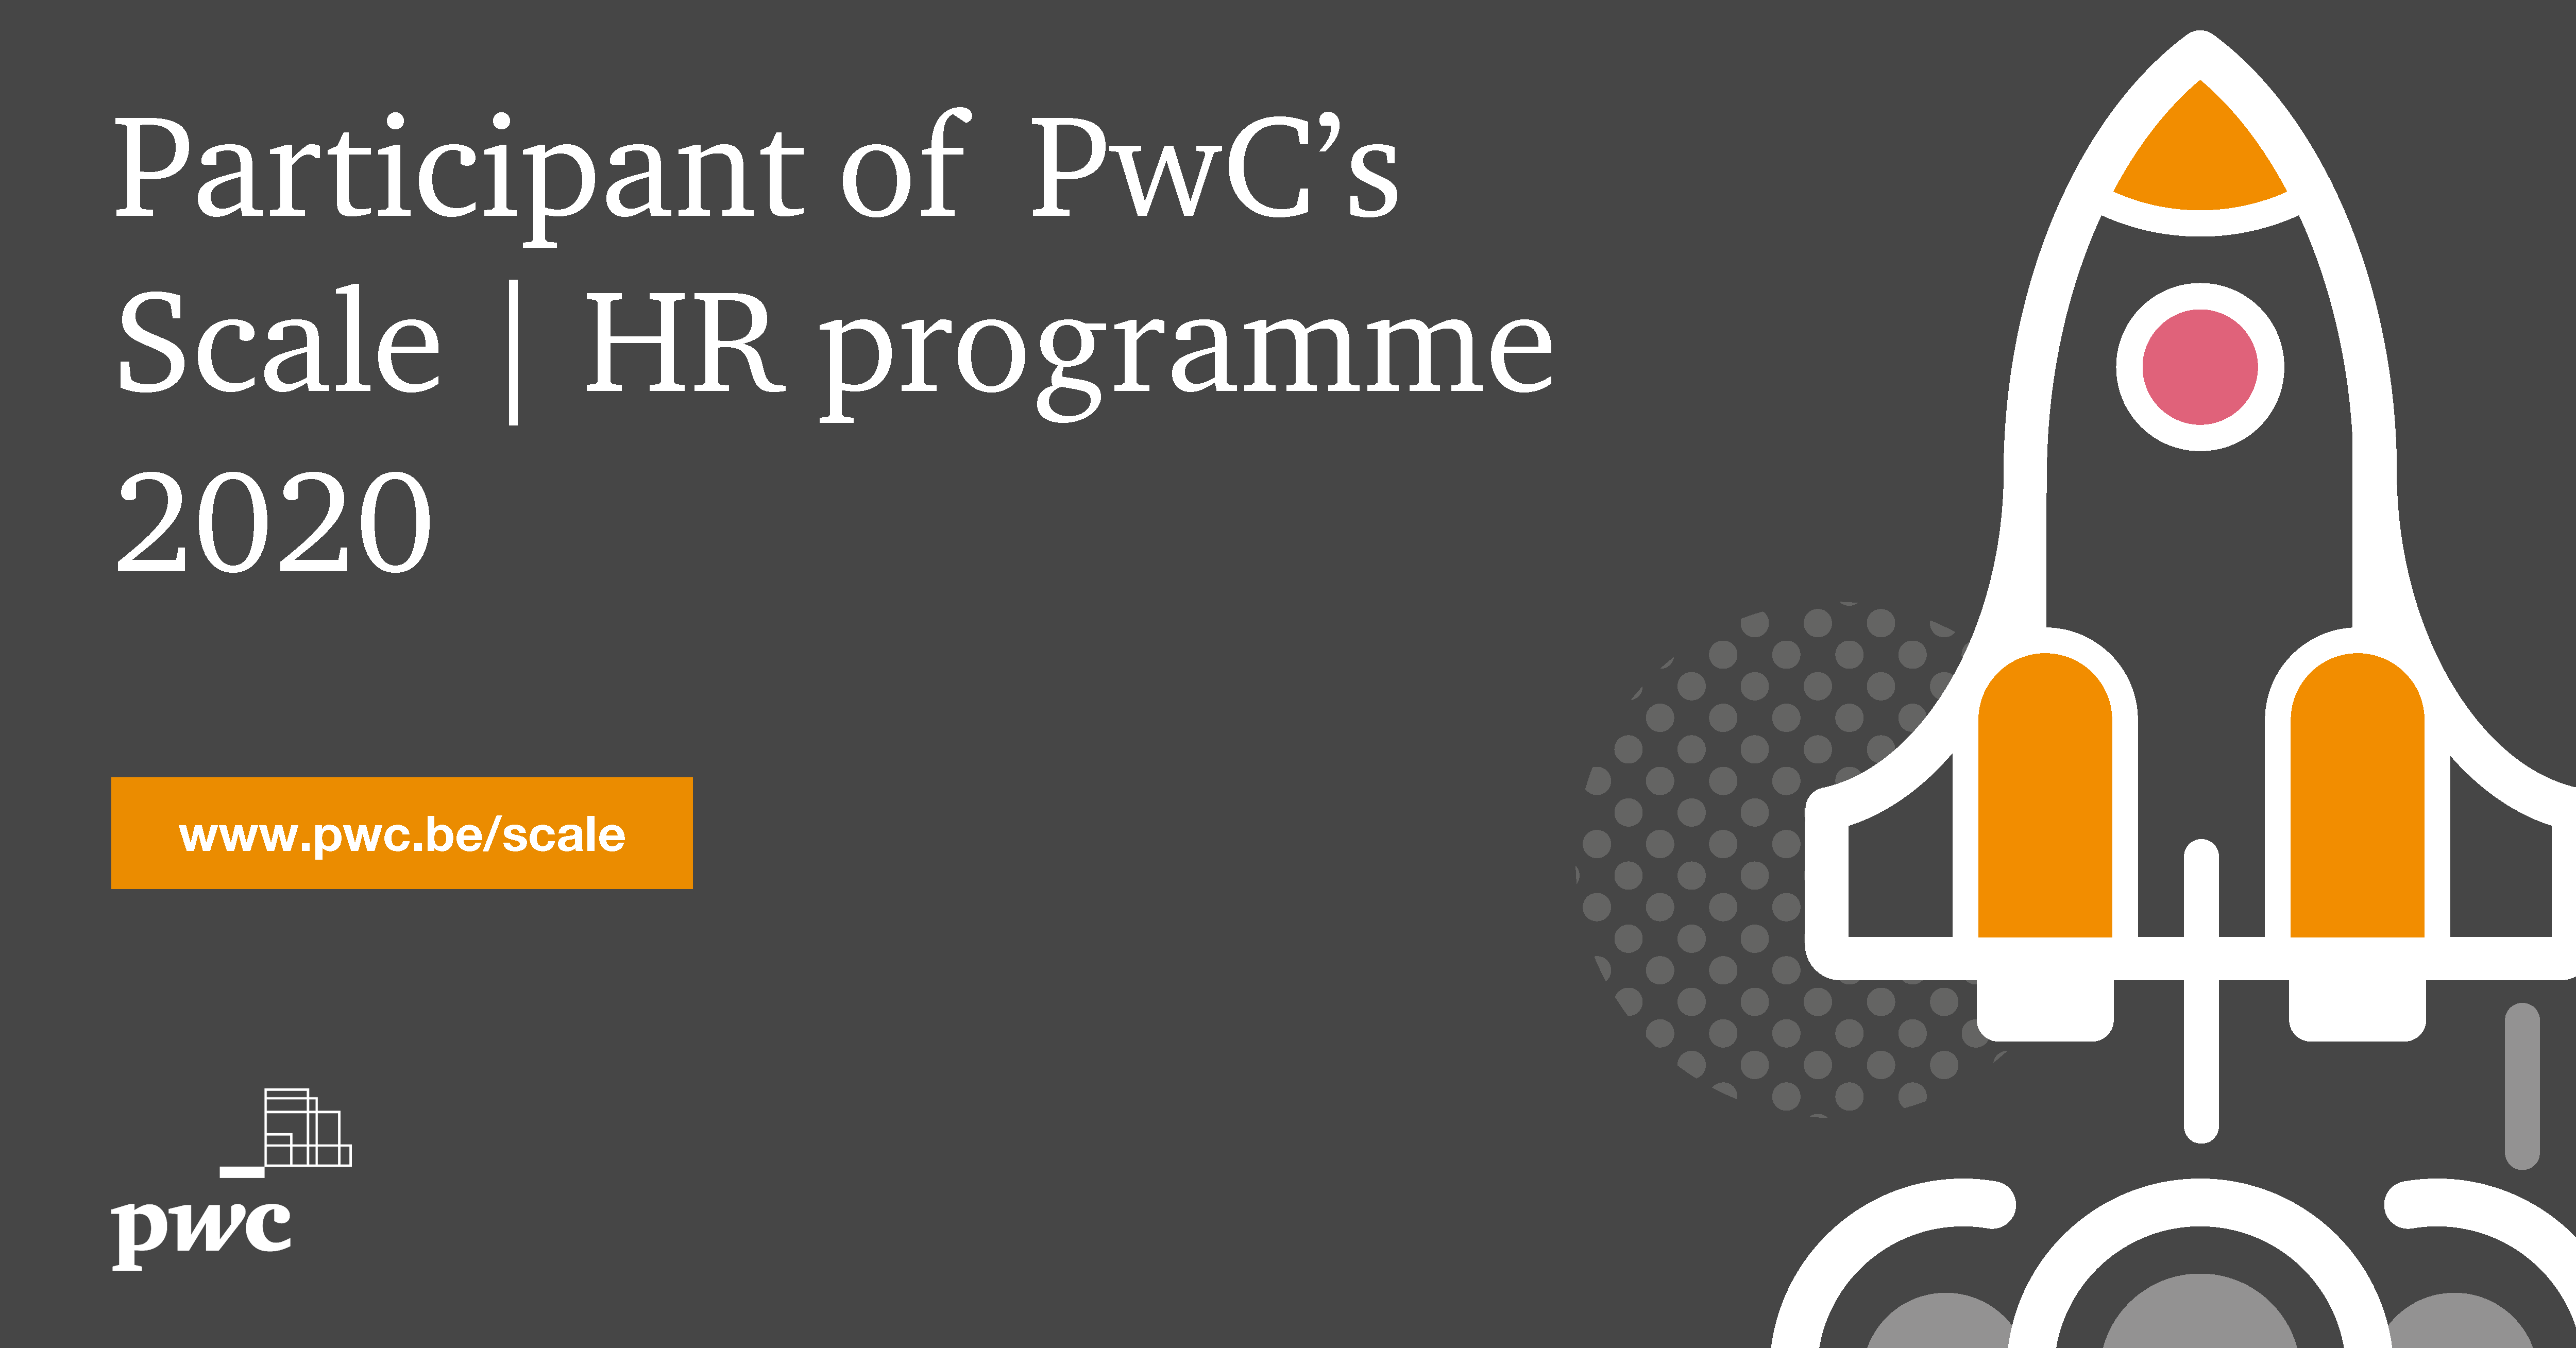 Participant of PwC's Scale HR programme 2020